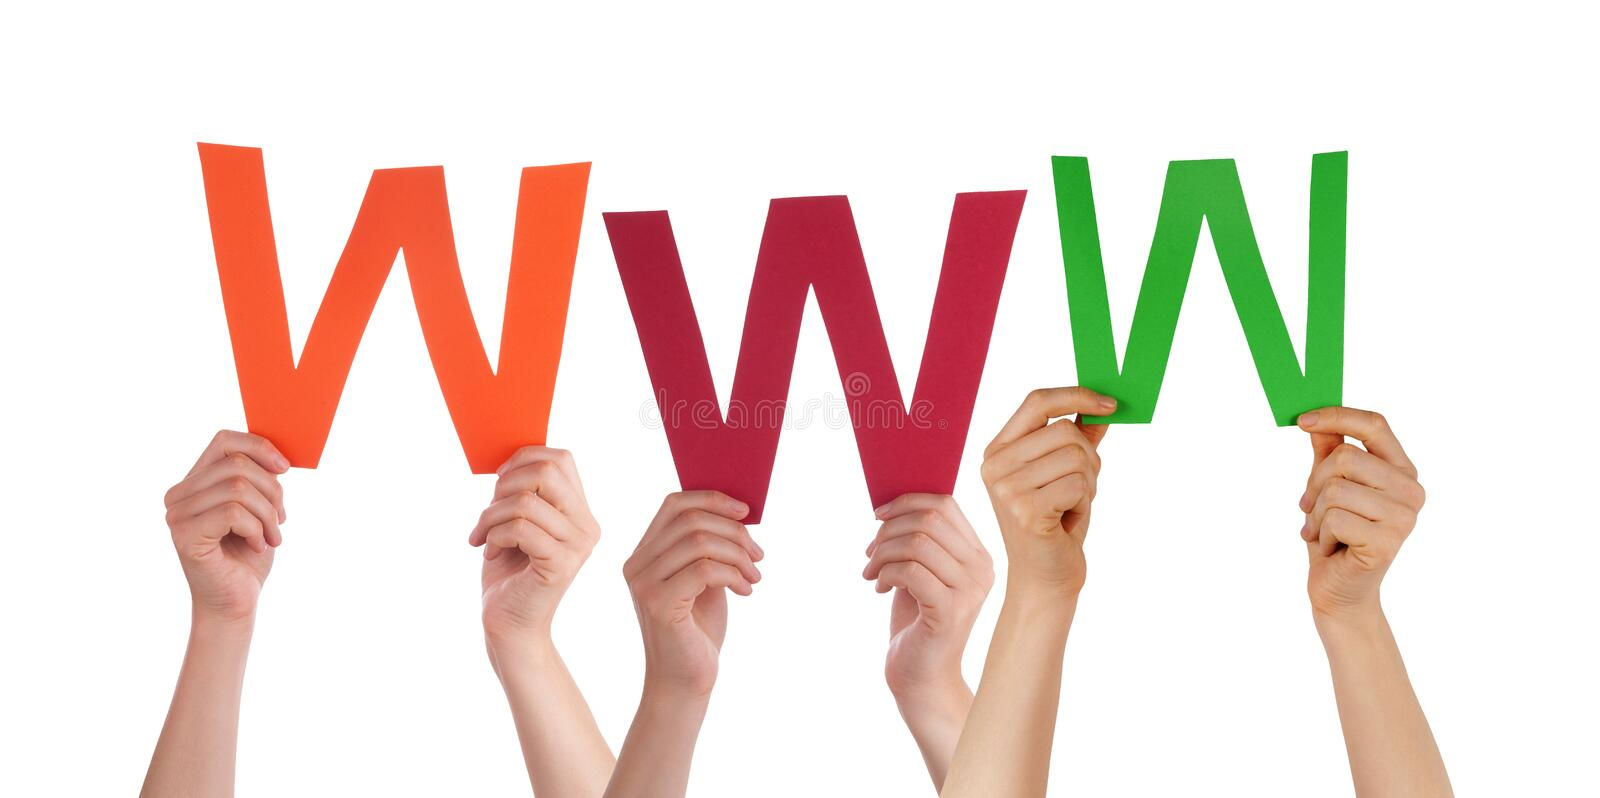 Download Hands Holding WWW stock image. Image of text, communicate - 33489619